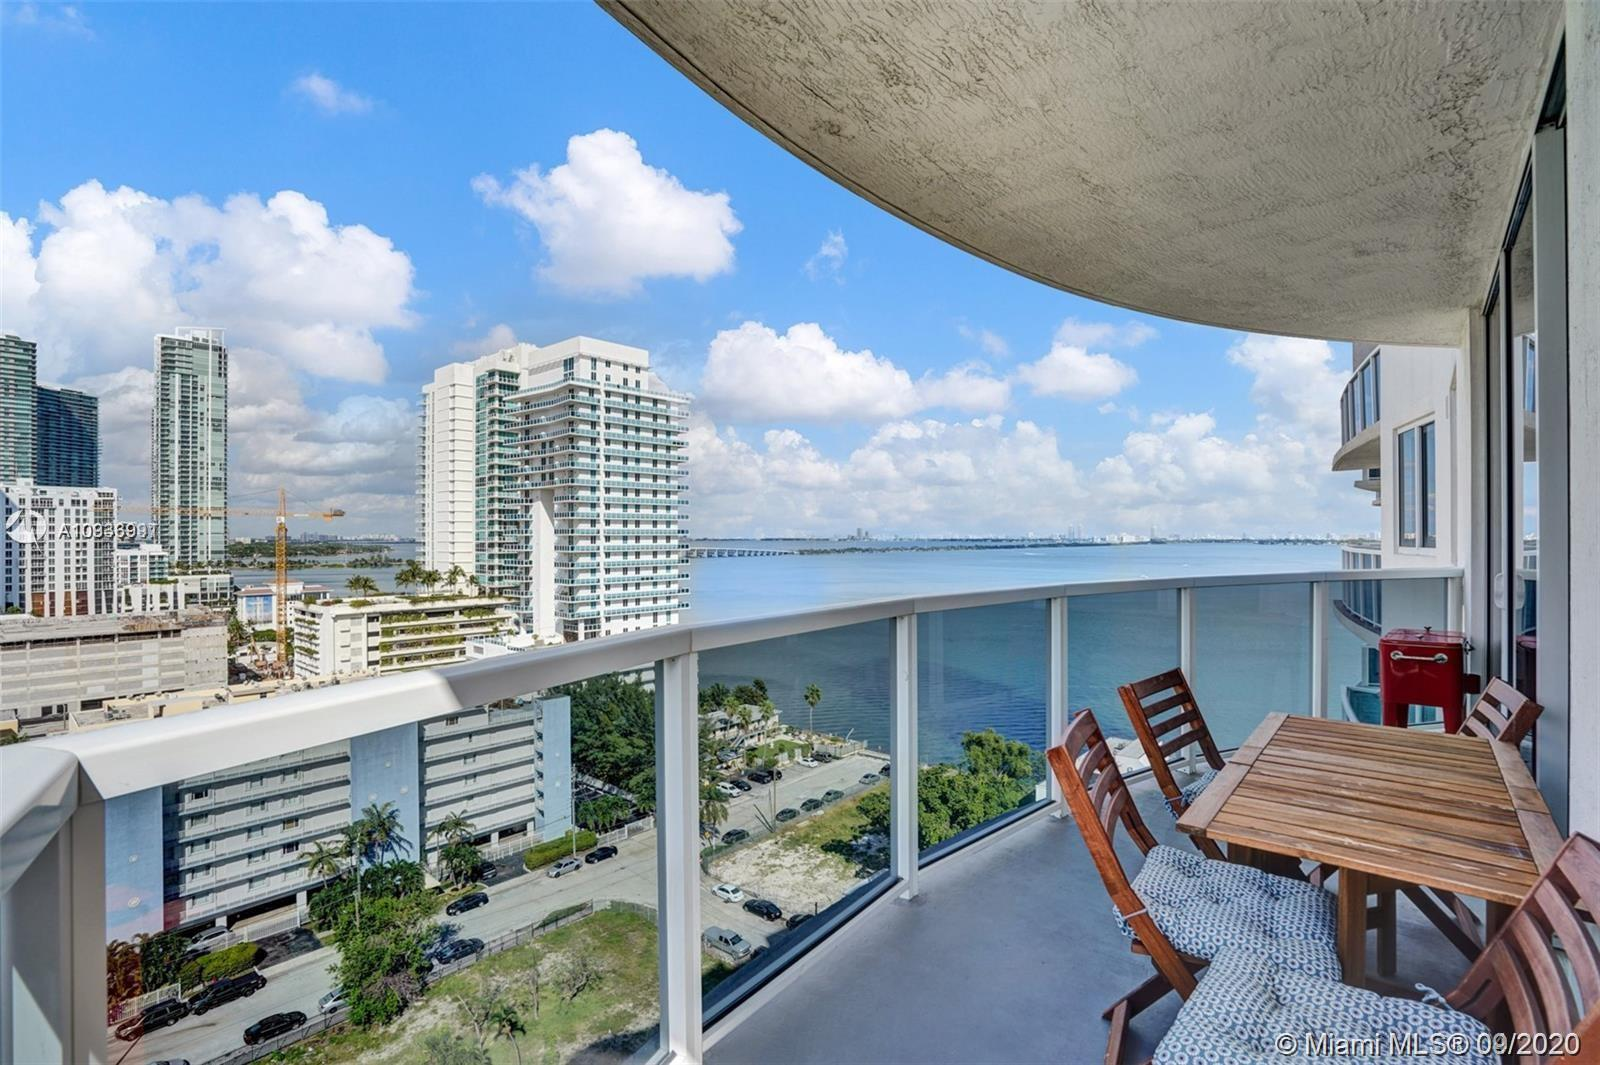 BEAUTIFUL 3 BED/2 BATH WITH SPECTACULAR VIEWS OF THE BAY, SOUTH BEACH, DOWNTOWN AND SKYLINE VIEWS. M